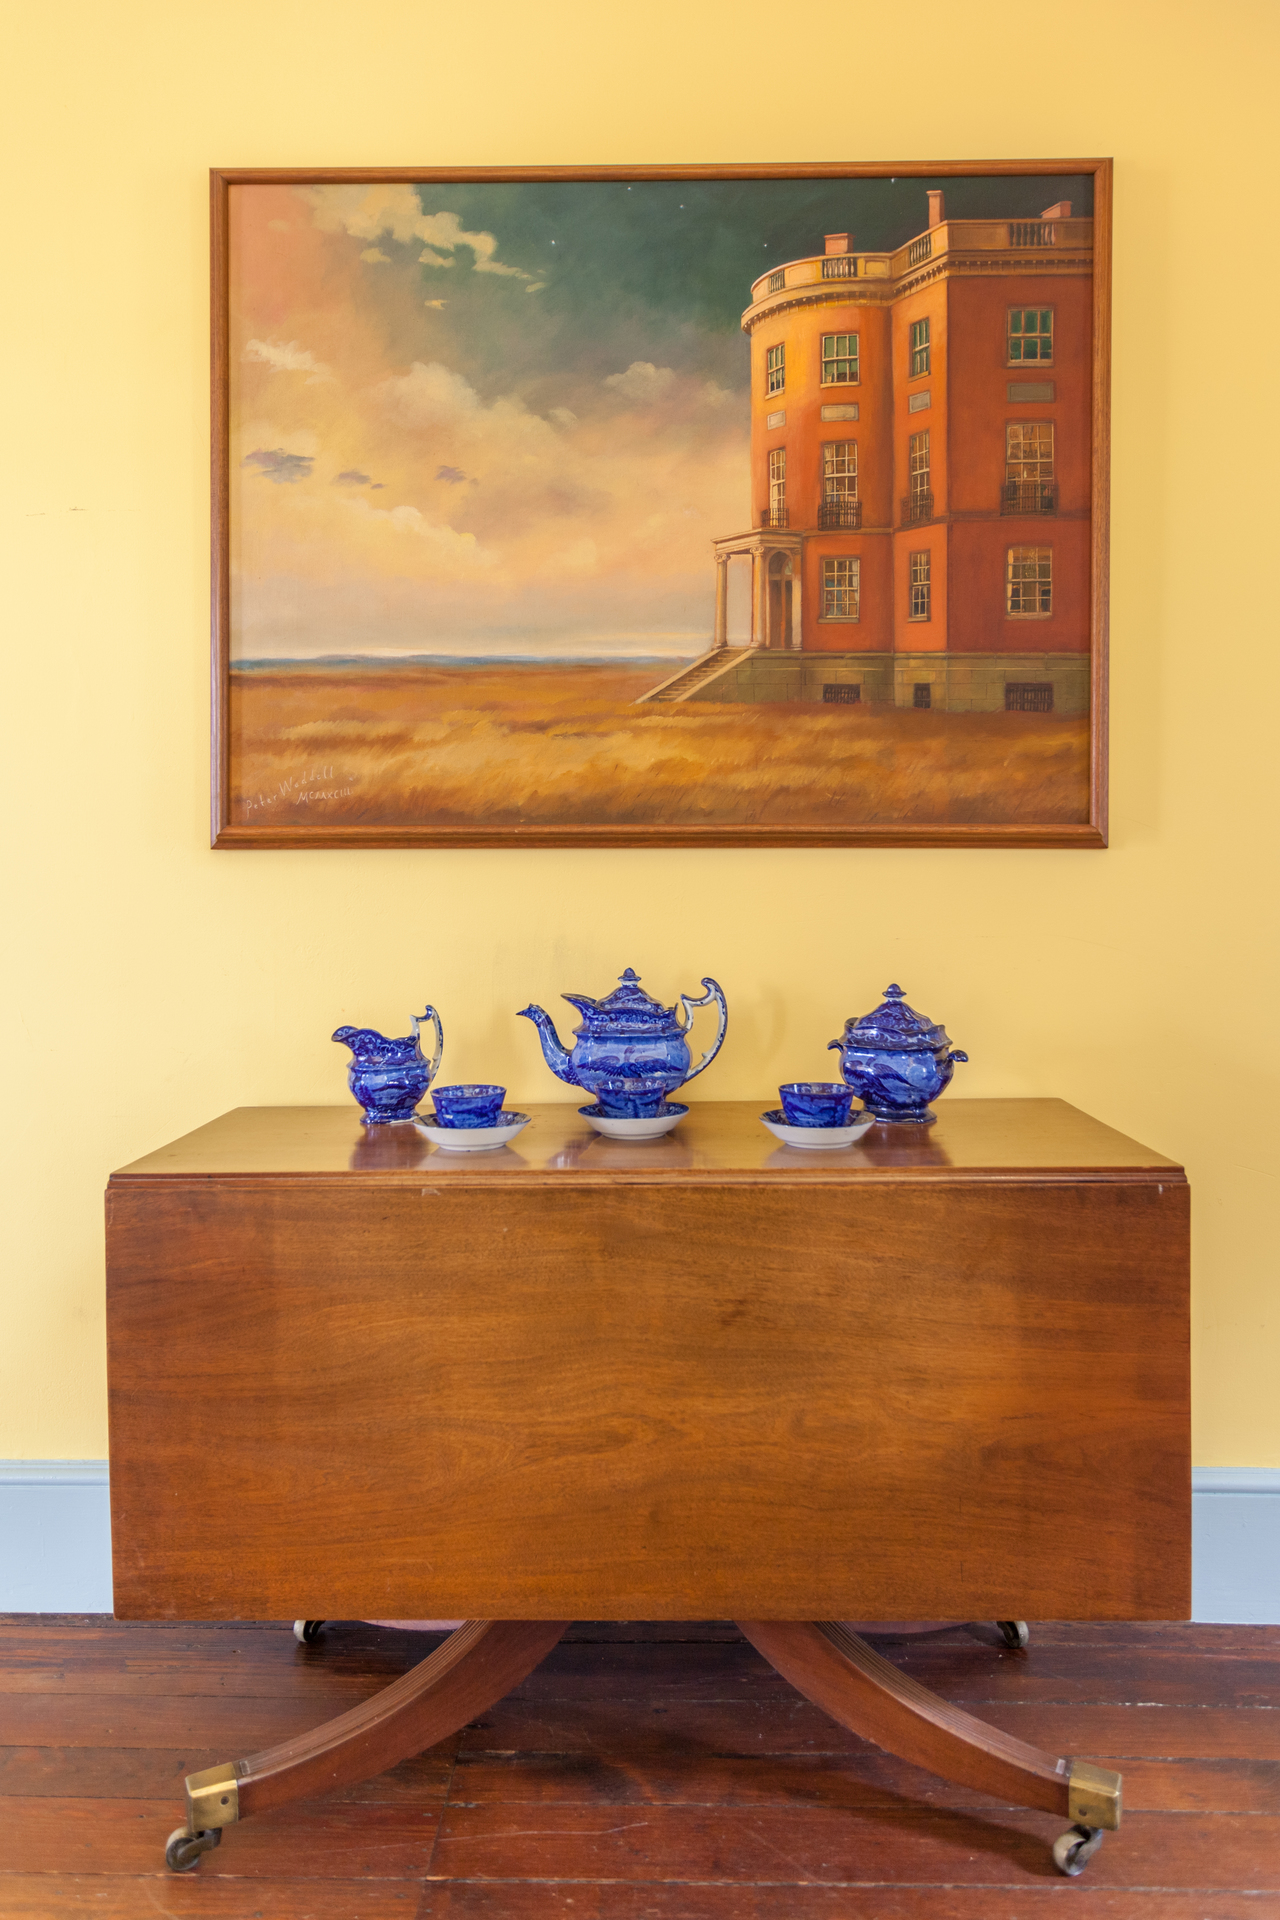 This painting was created by artist-in-residence Peter Waddell in the late-90s. It is a stylized interpretation of the land surrounding the Octagon at its construction. In 1800 the city of Washington was relatively rural yet, and the Octagon was one of the only private houses in the area.